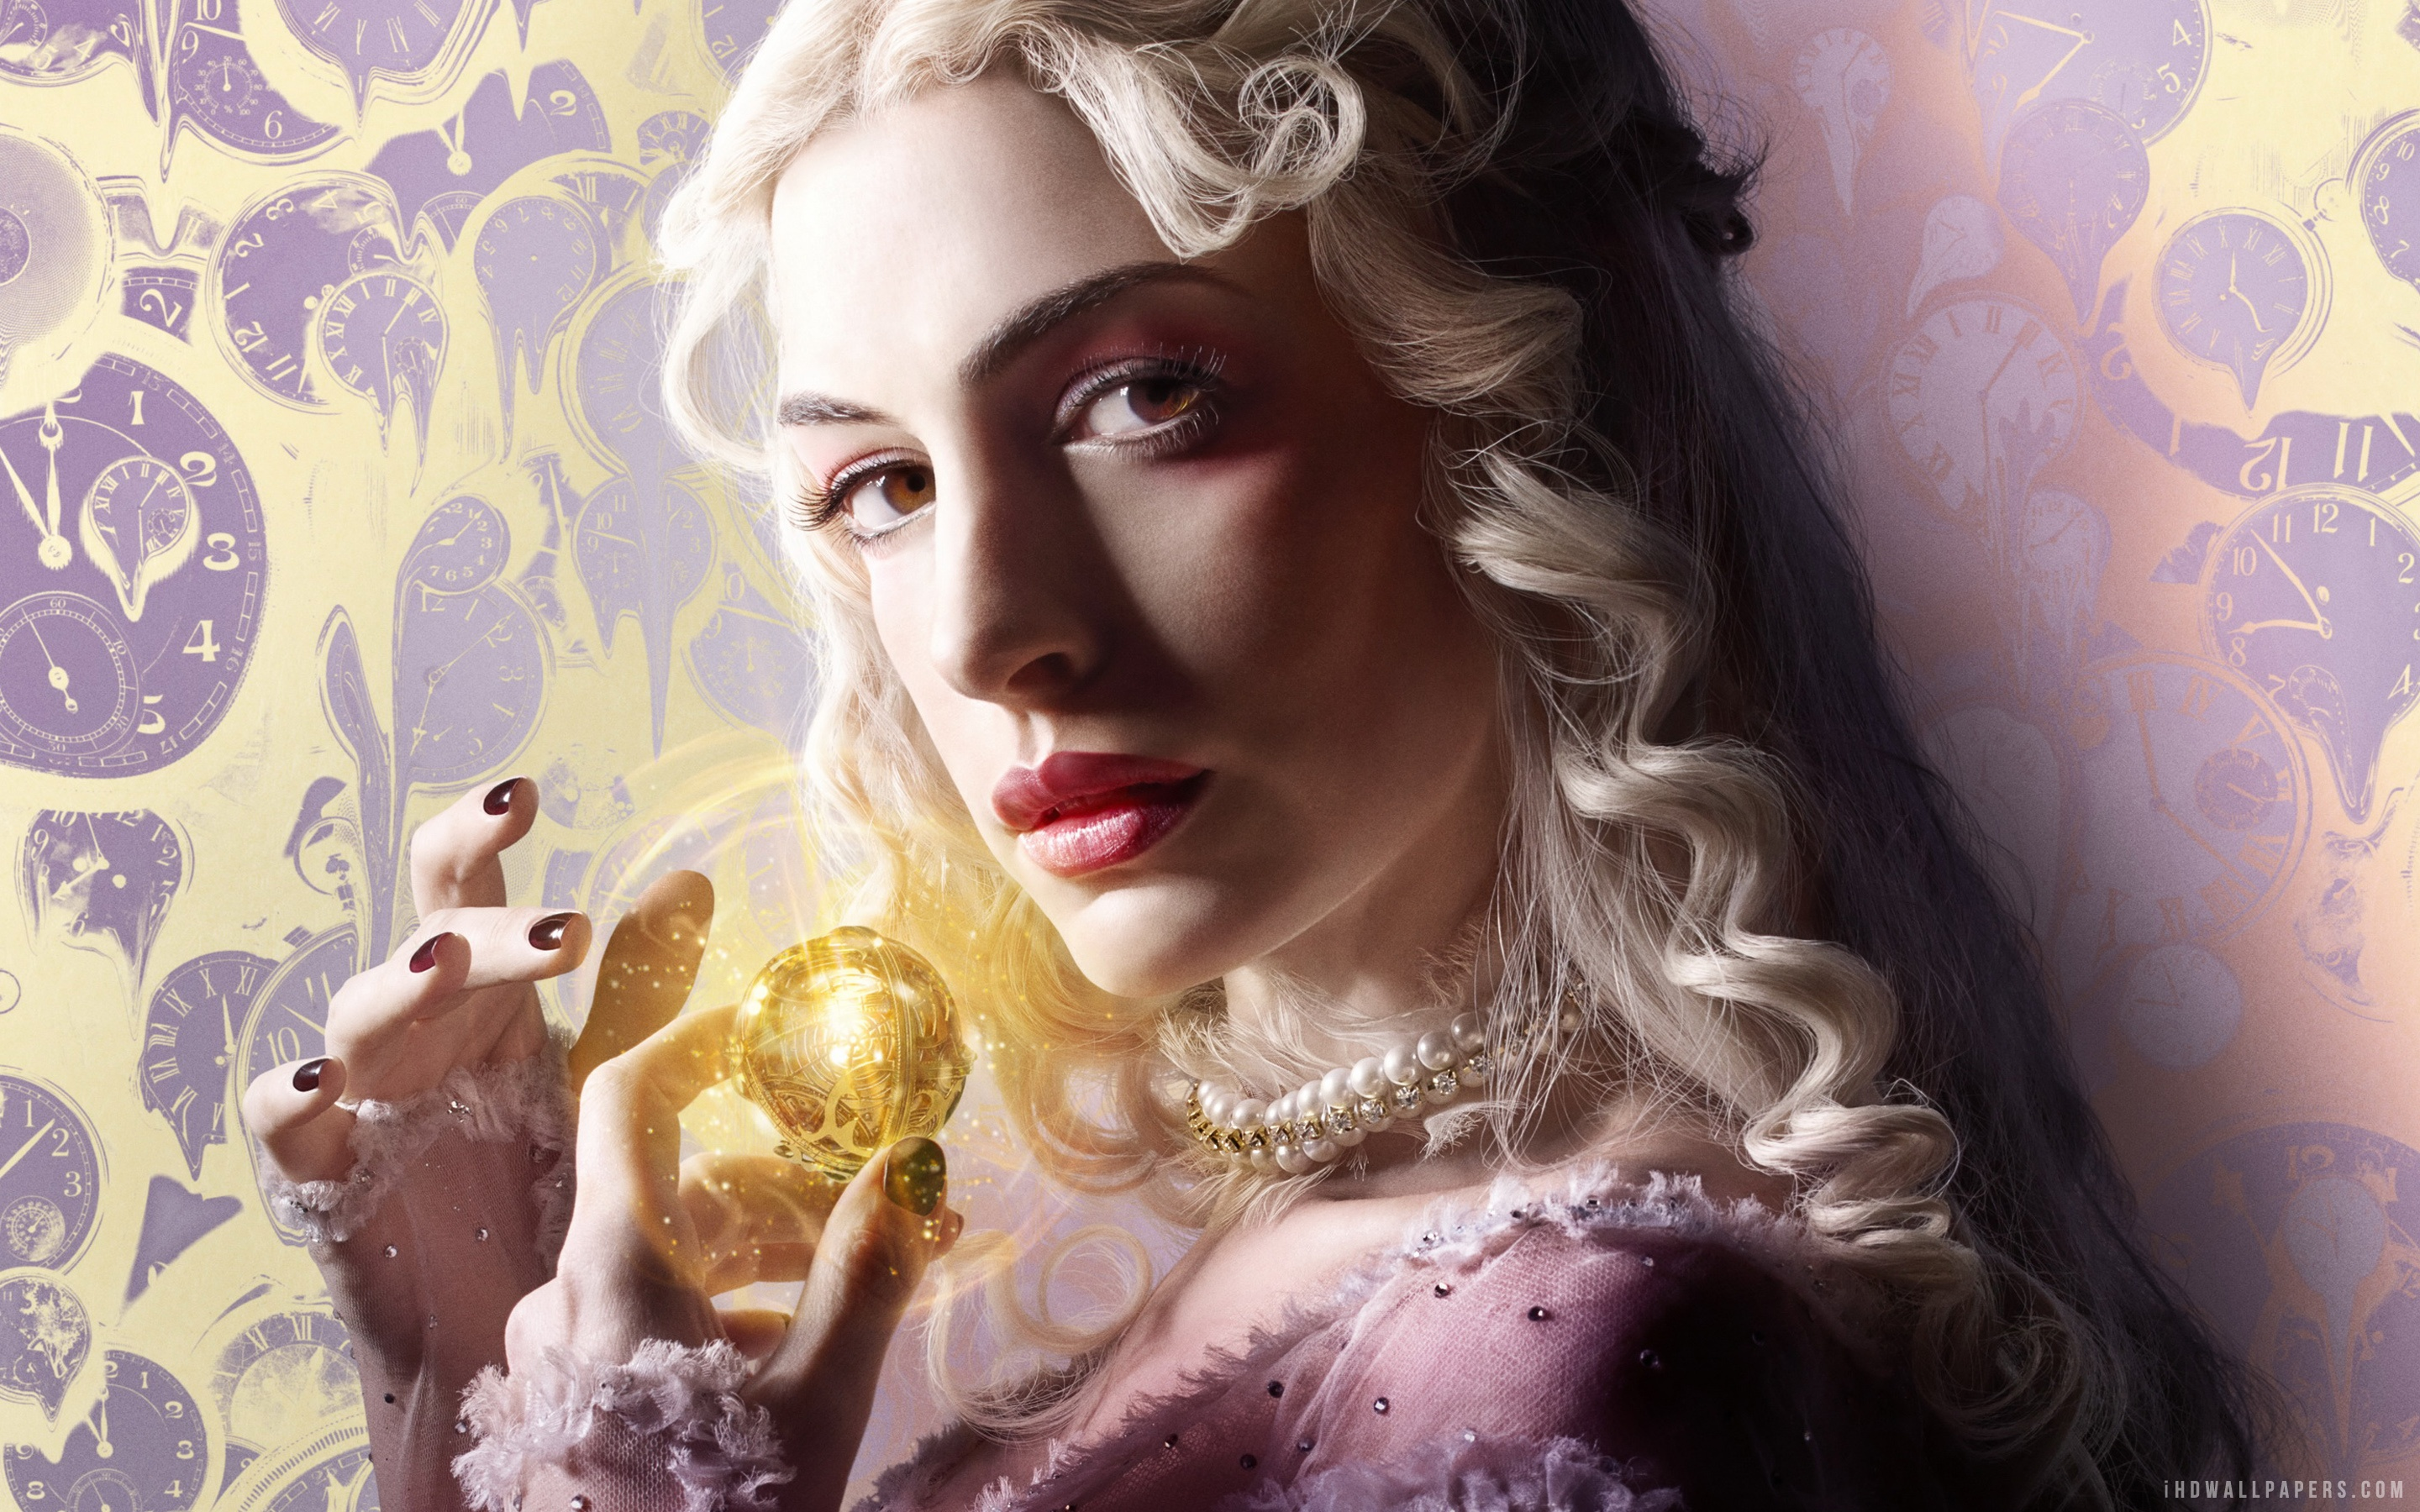 anne_hathaway_alice_through_the_looking_glass-2880x1800